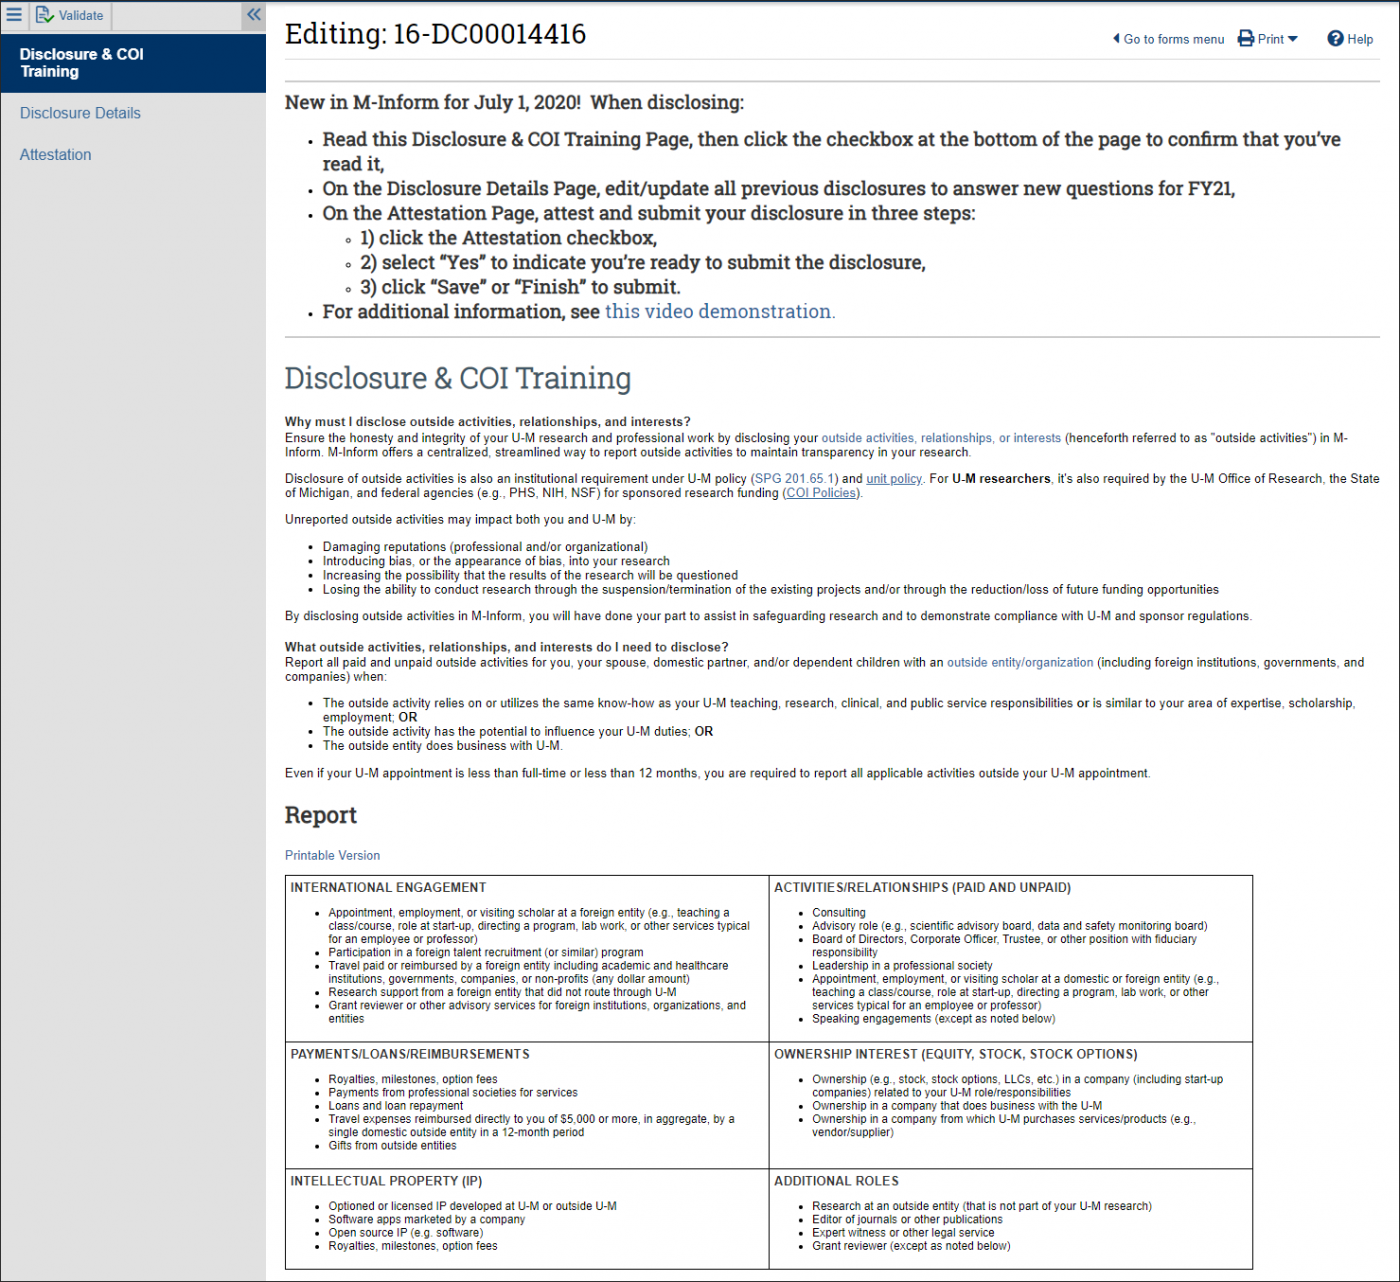 M-Inform Disclosure & COI Training page top